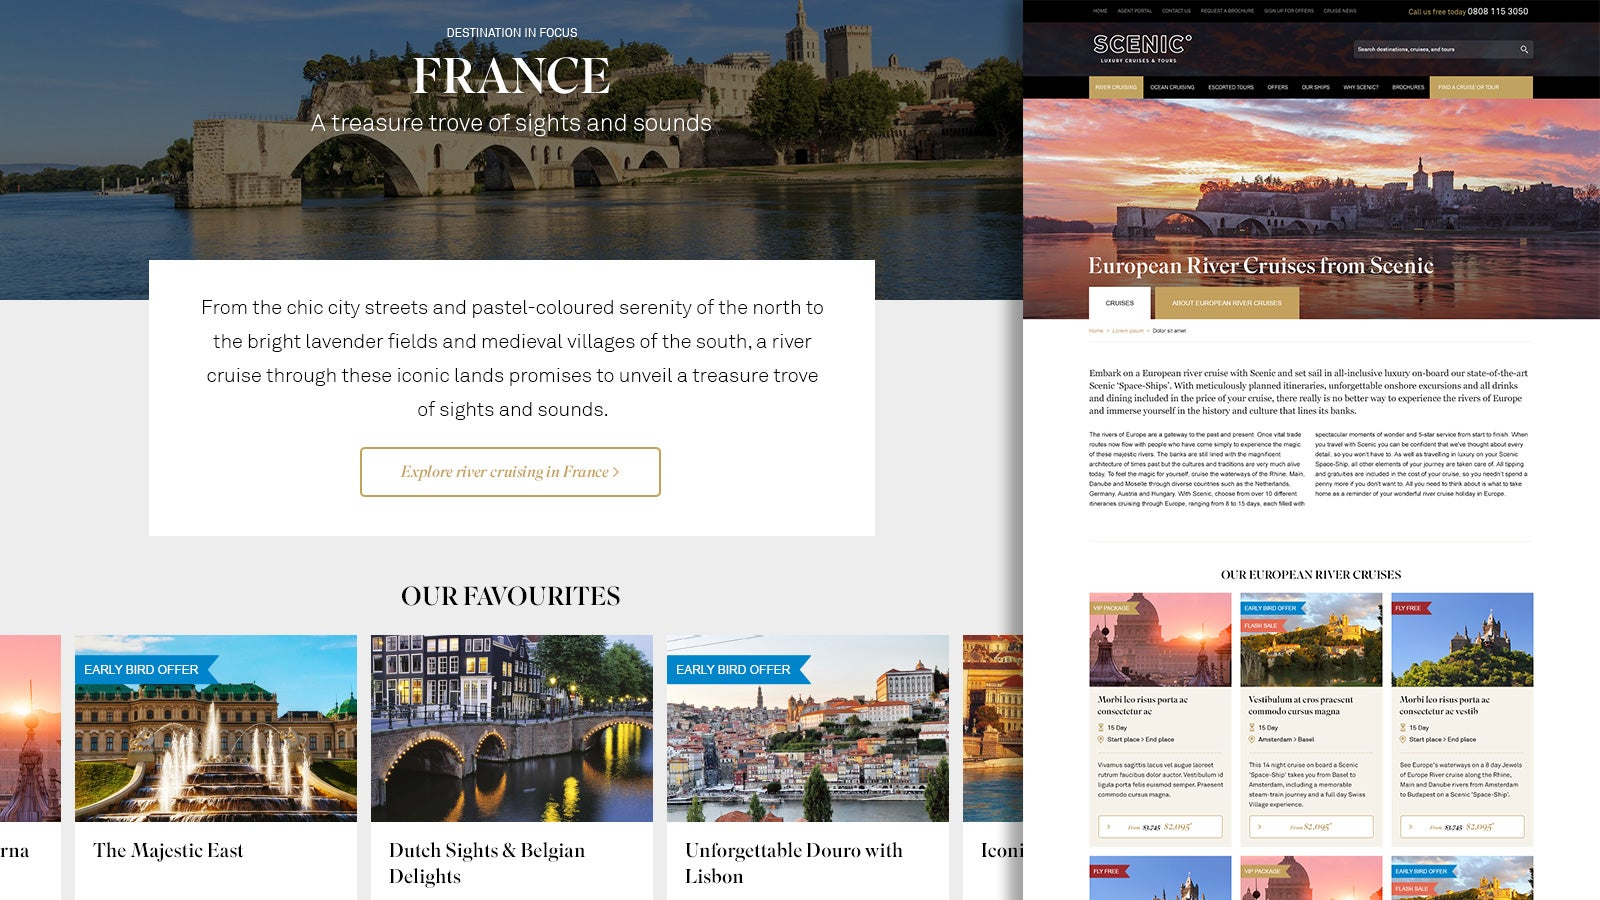 Scenic | France 'Destination in Focus' website page and European River Cruise offerings page | Devotion